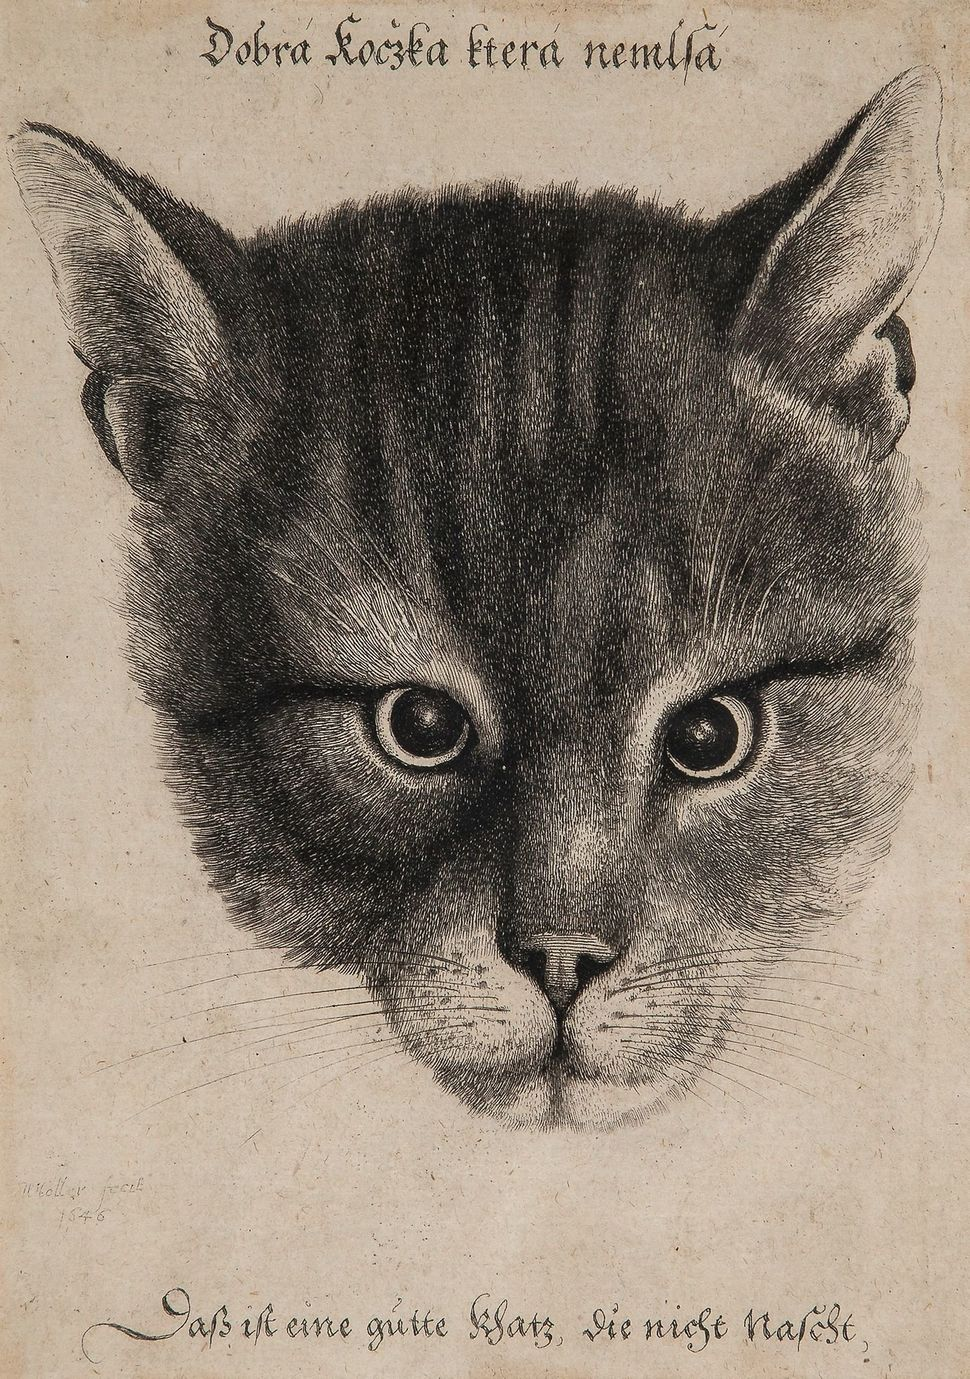 172. Hollar (Wenceslaus, 1607-1677) Head of a Cat (middle size) etching, 175 x 125 mm. (visible), light surface dirt, minor b